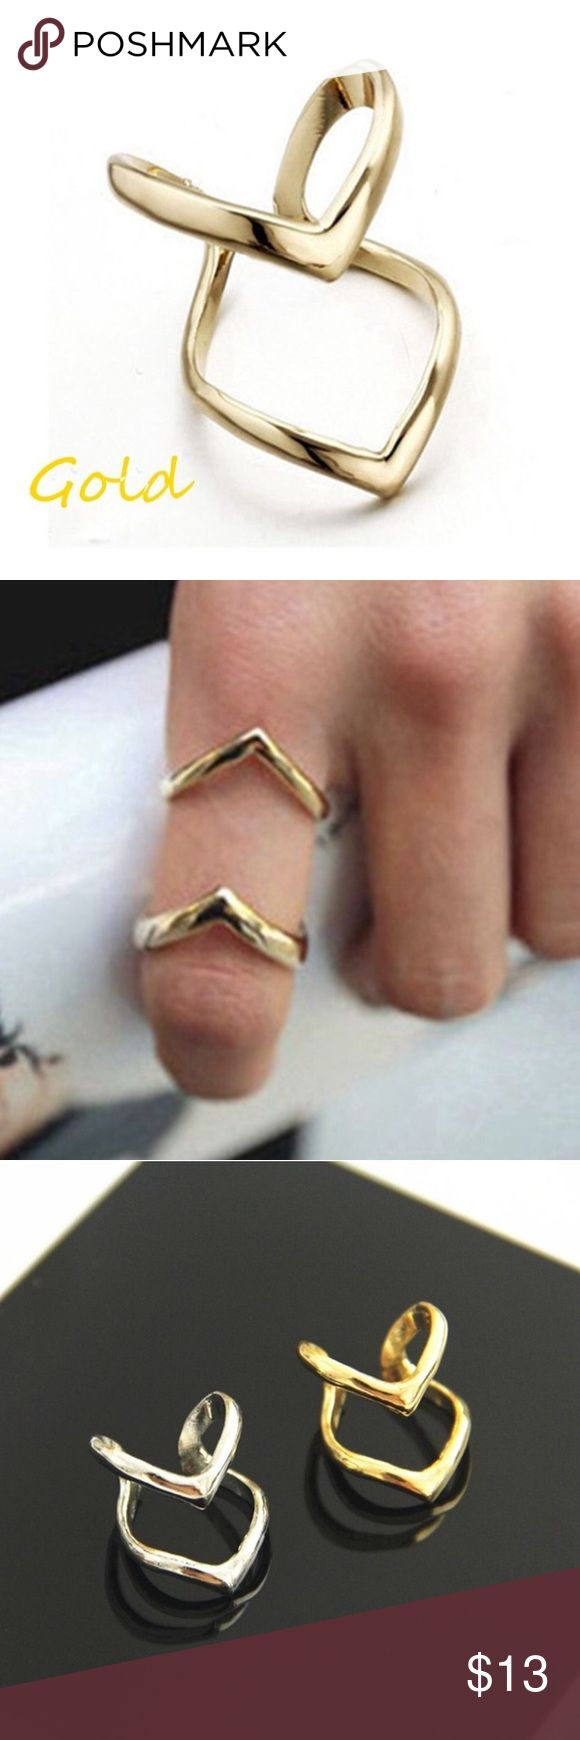 Gold Double V Cuff Ring Size 6 Midi Knuckle Gold Tone Double V Cuff Ring Size 6. Can also be worn as a midi First Knuckle ring. Very hot item! Silver Tone also available. SAVE 10% when you Bundle 2 or more items & pay only ONE shipping fee! Classic Trends Jewelry Rings